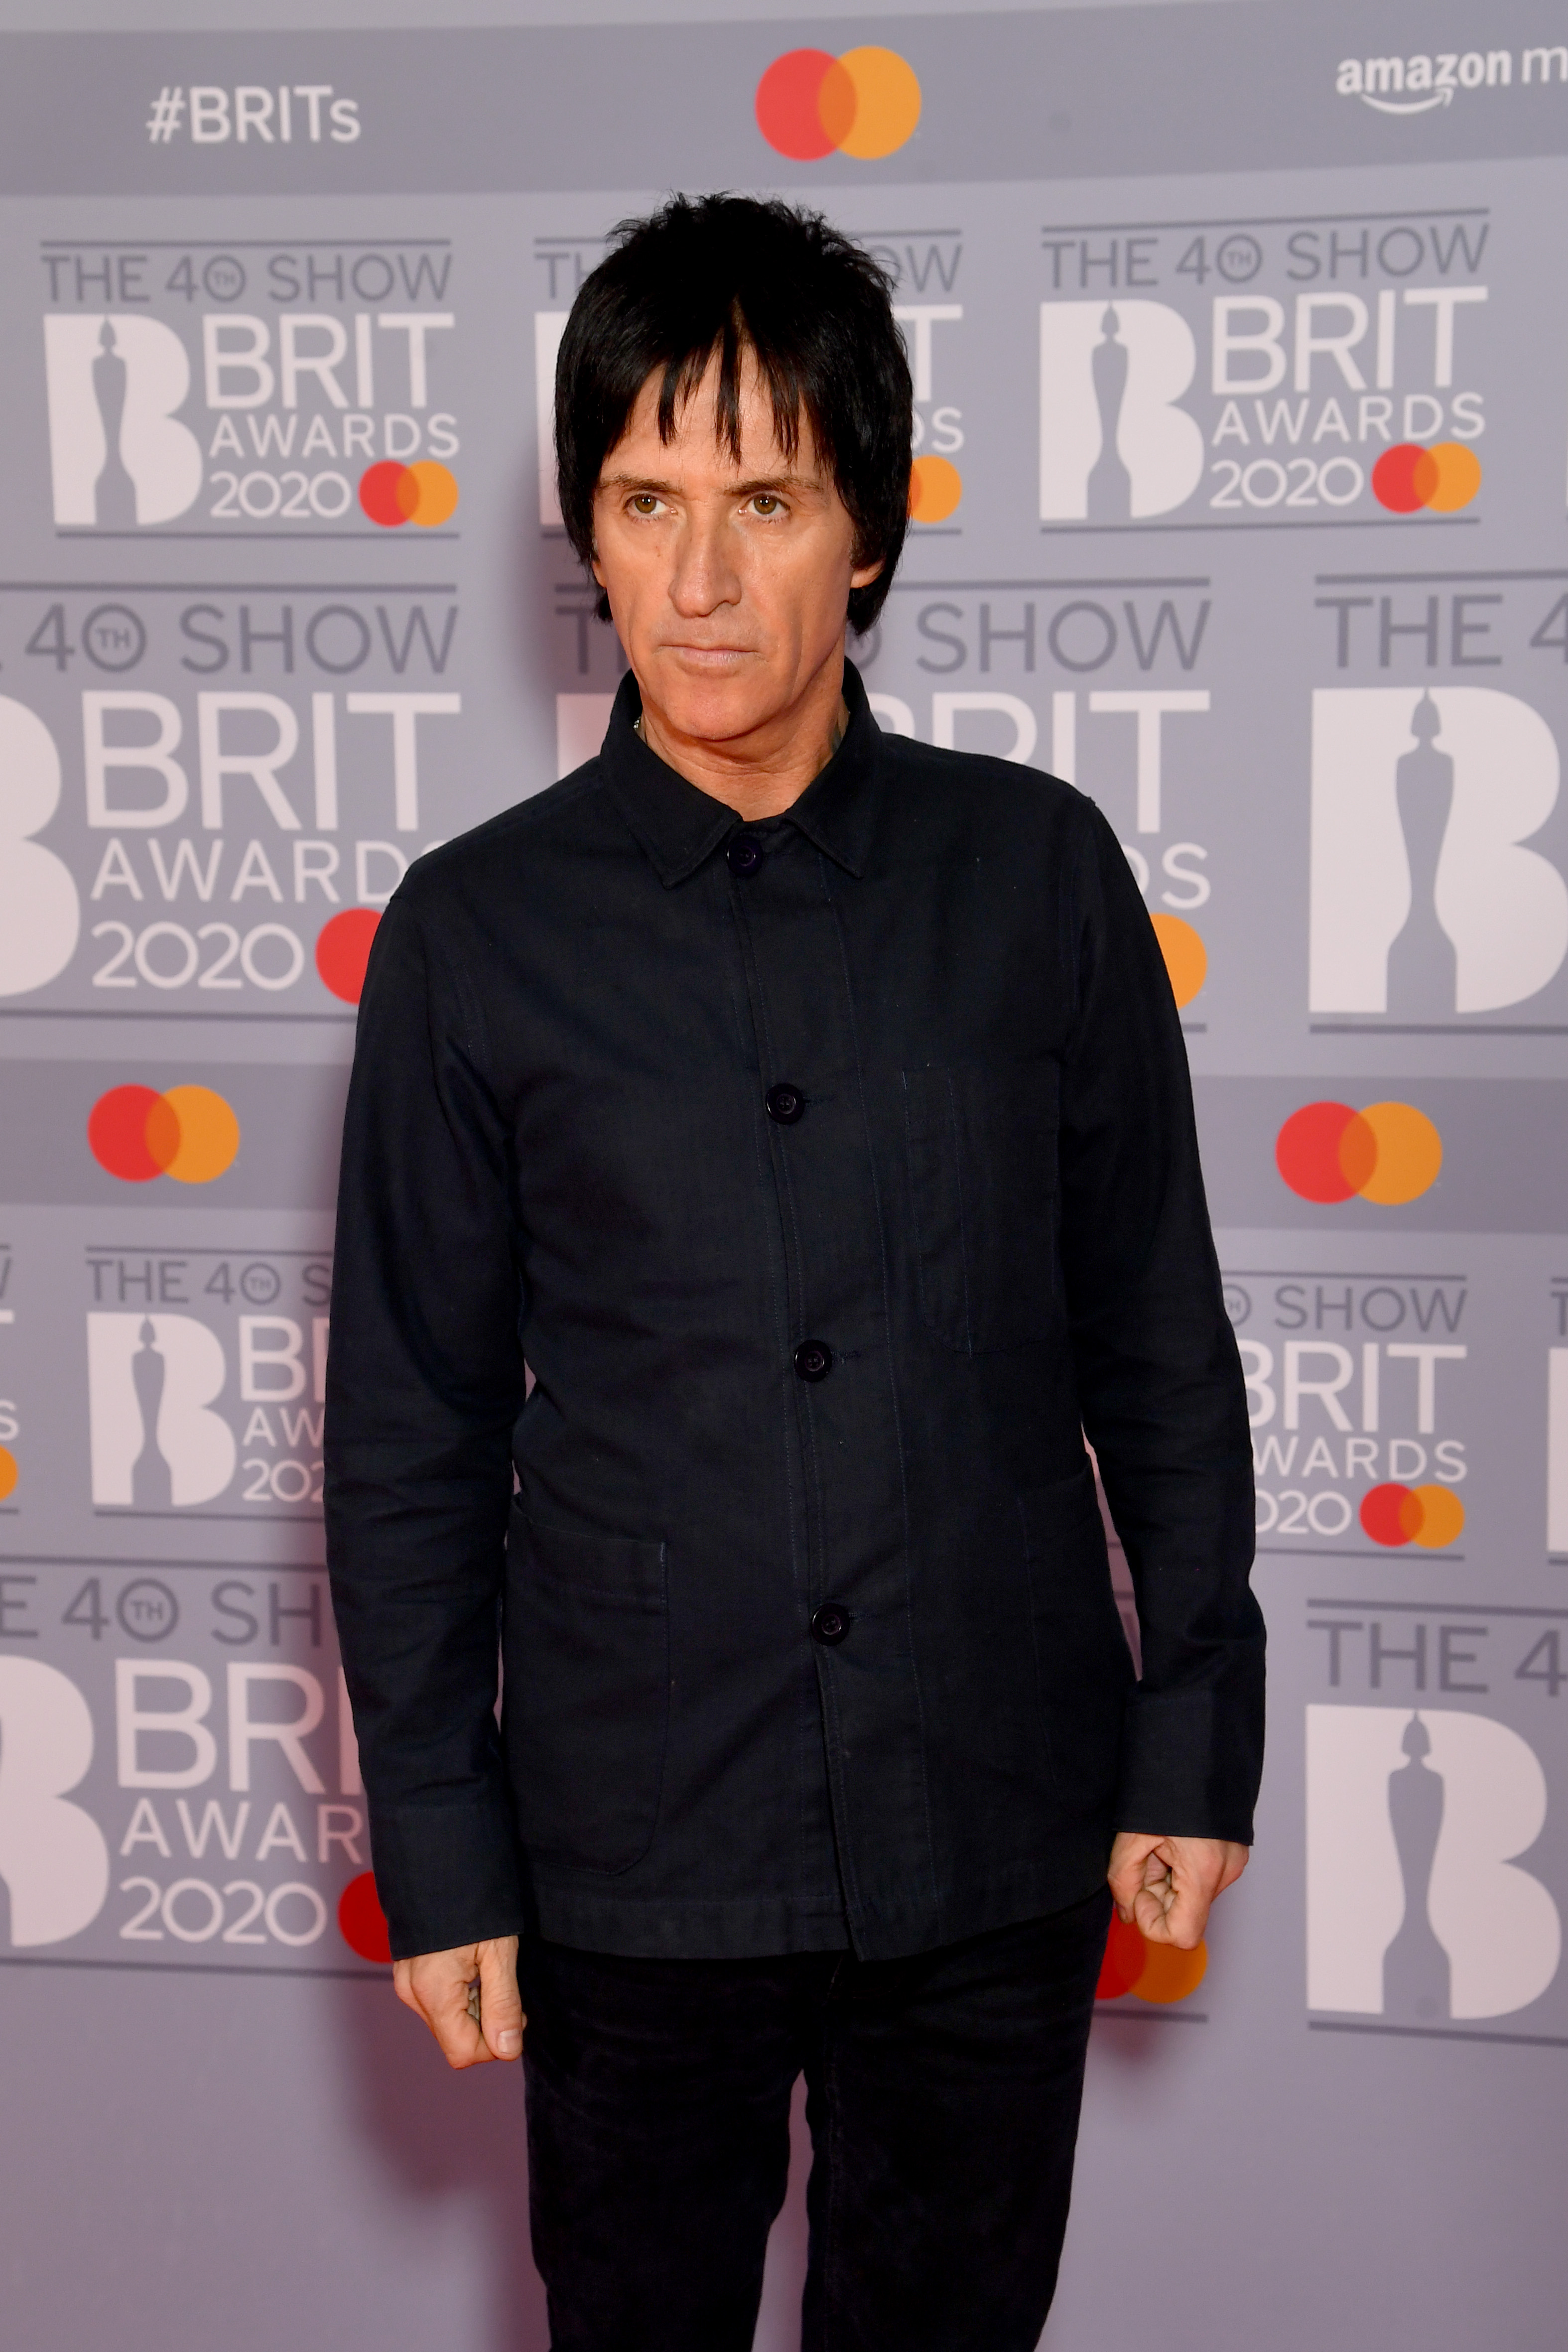 Johnny Marr attends The BRIT Awards 2020 at The O2 Arena on February 18, 2020 in London, England. (Photo by Dave J Hogan/Getty Images)